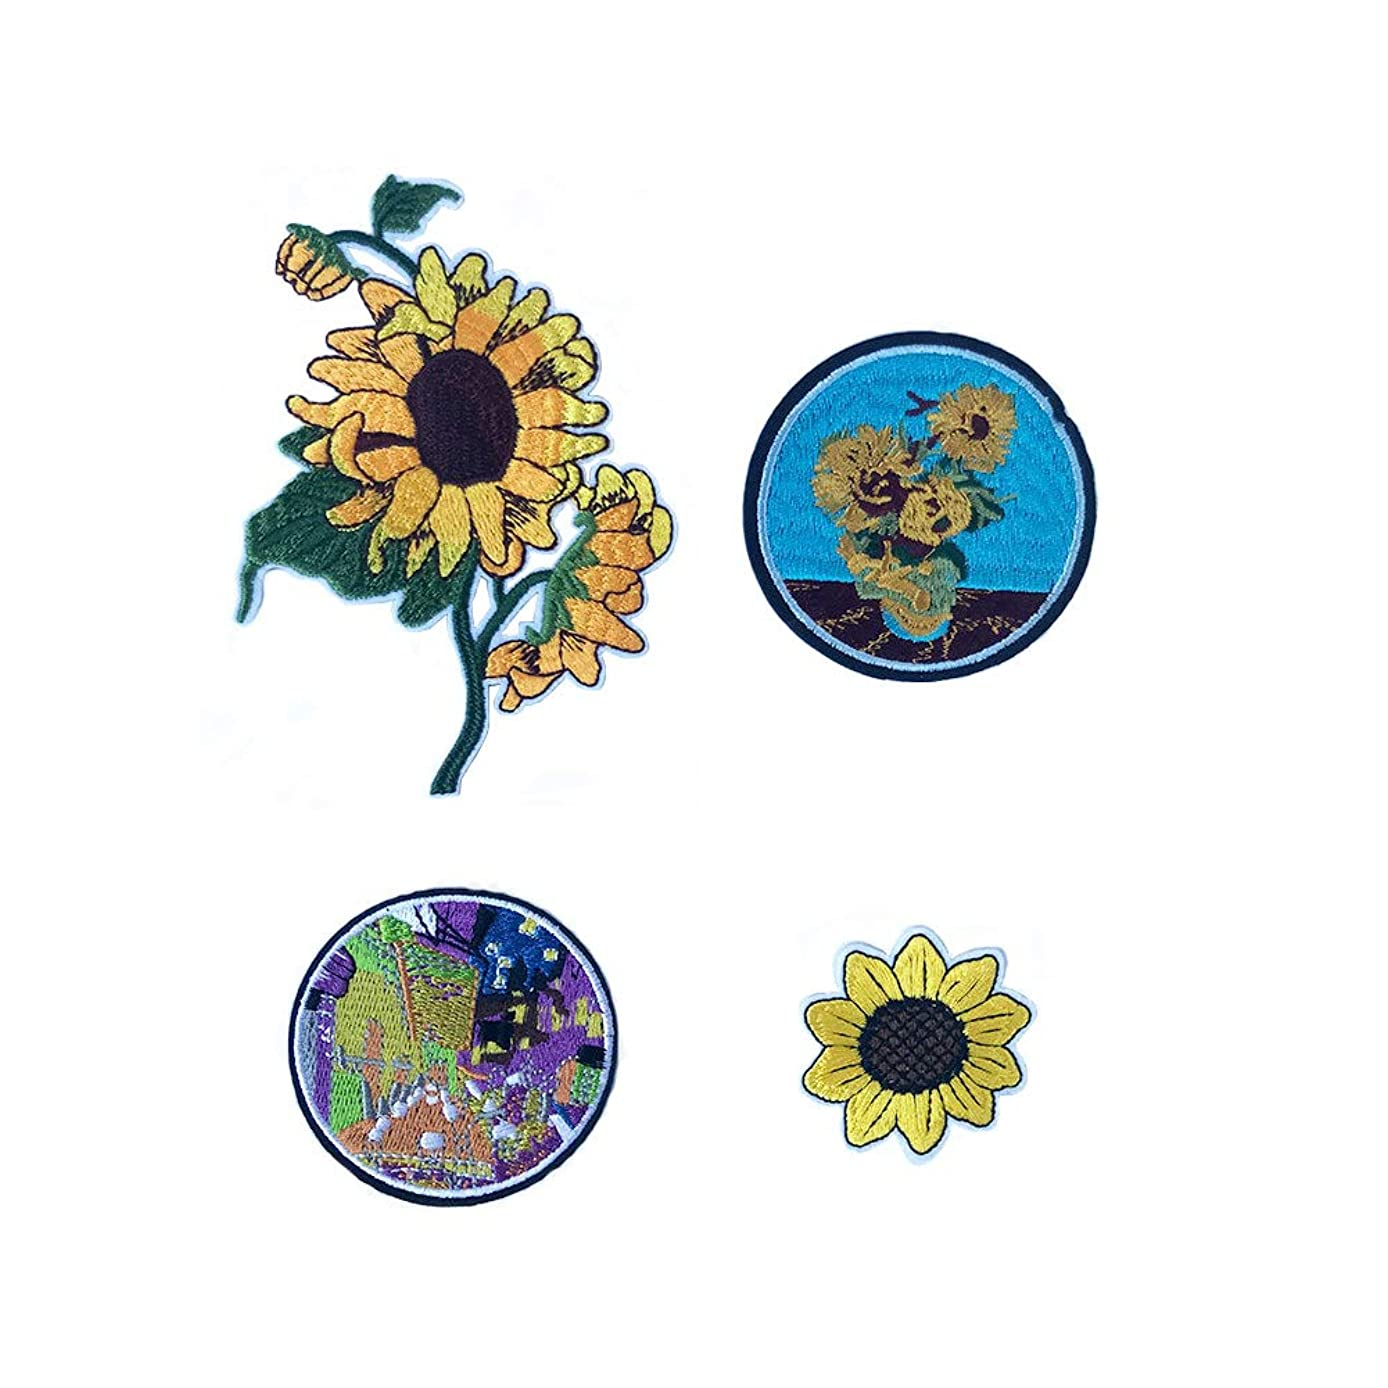 Mystart Set of 4 Pieces Van Gogh Sunflower Embroidered Iron On Patches Appliques for Clothing Jacket Jeans